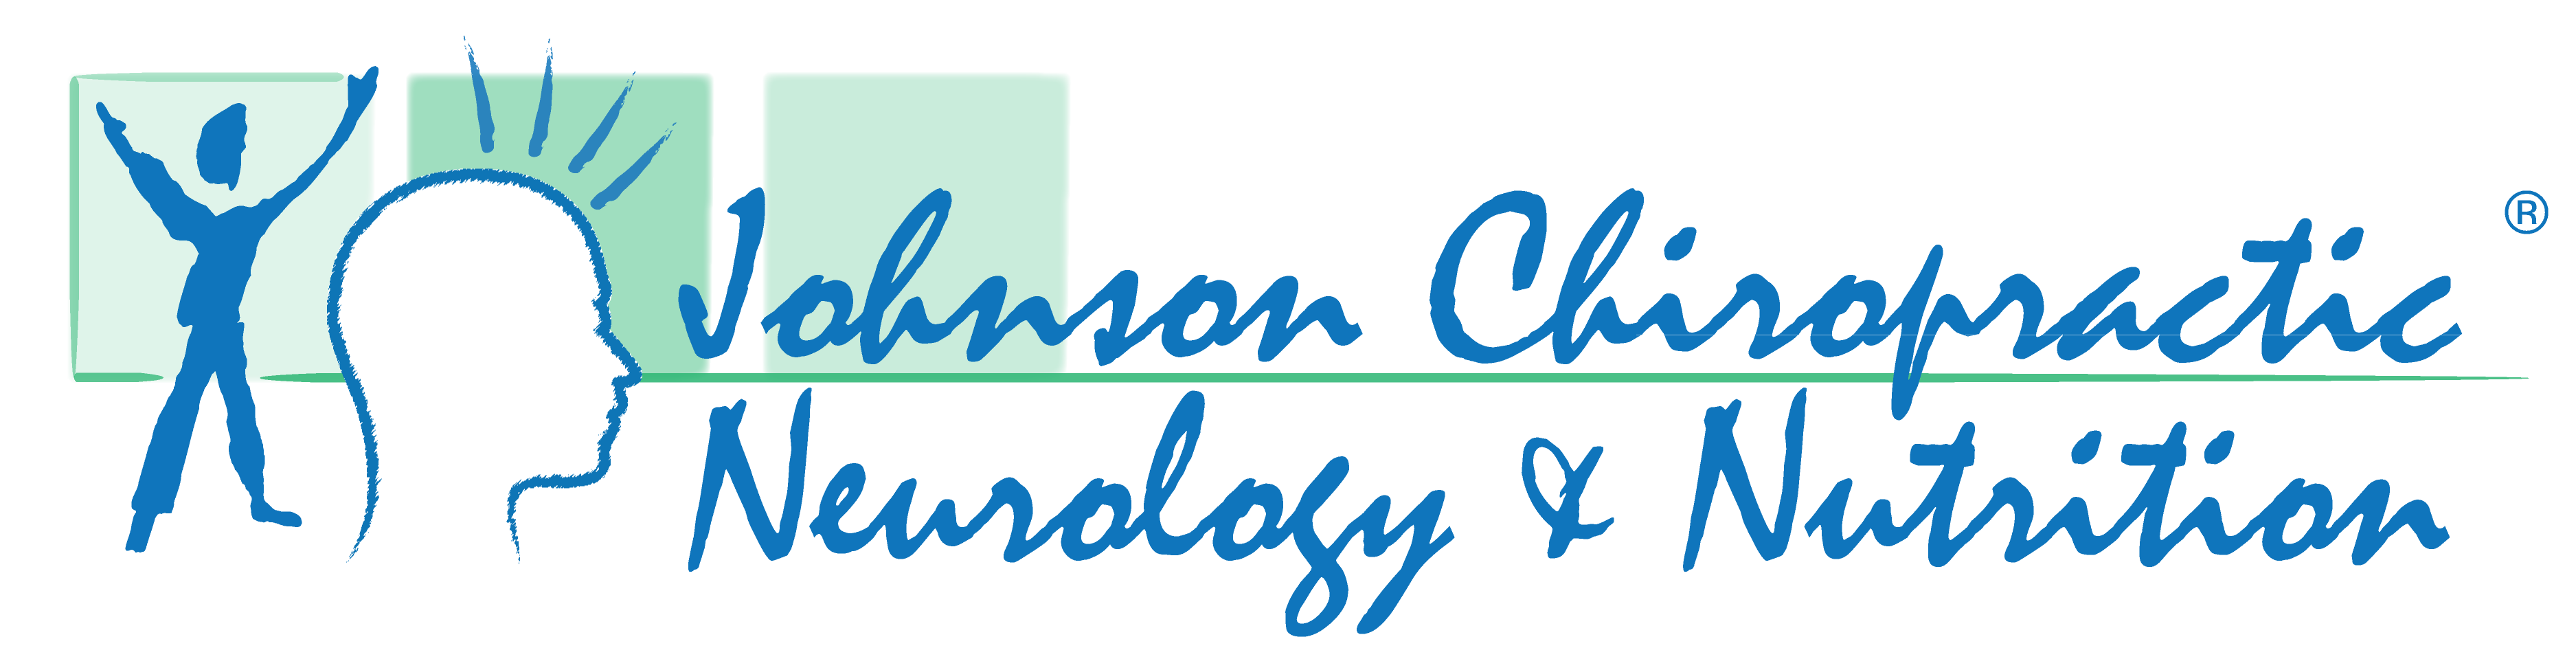 Johnson Chiropractic Neurology & Nutrition